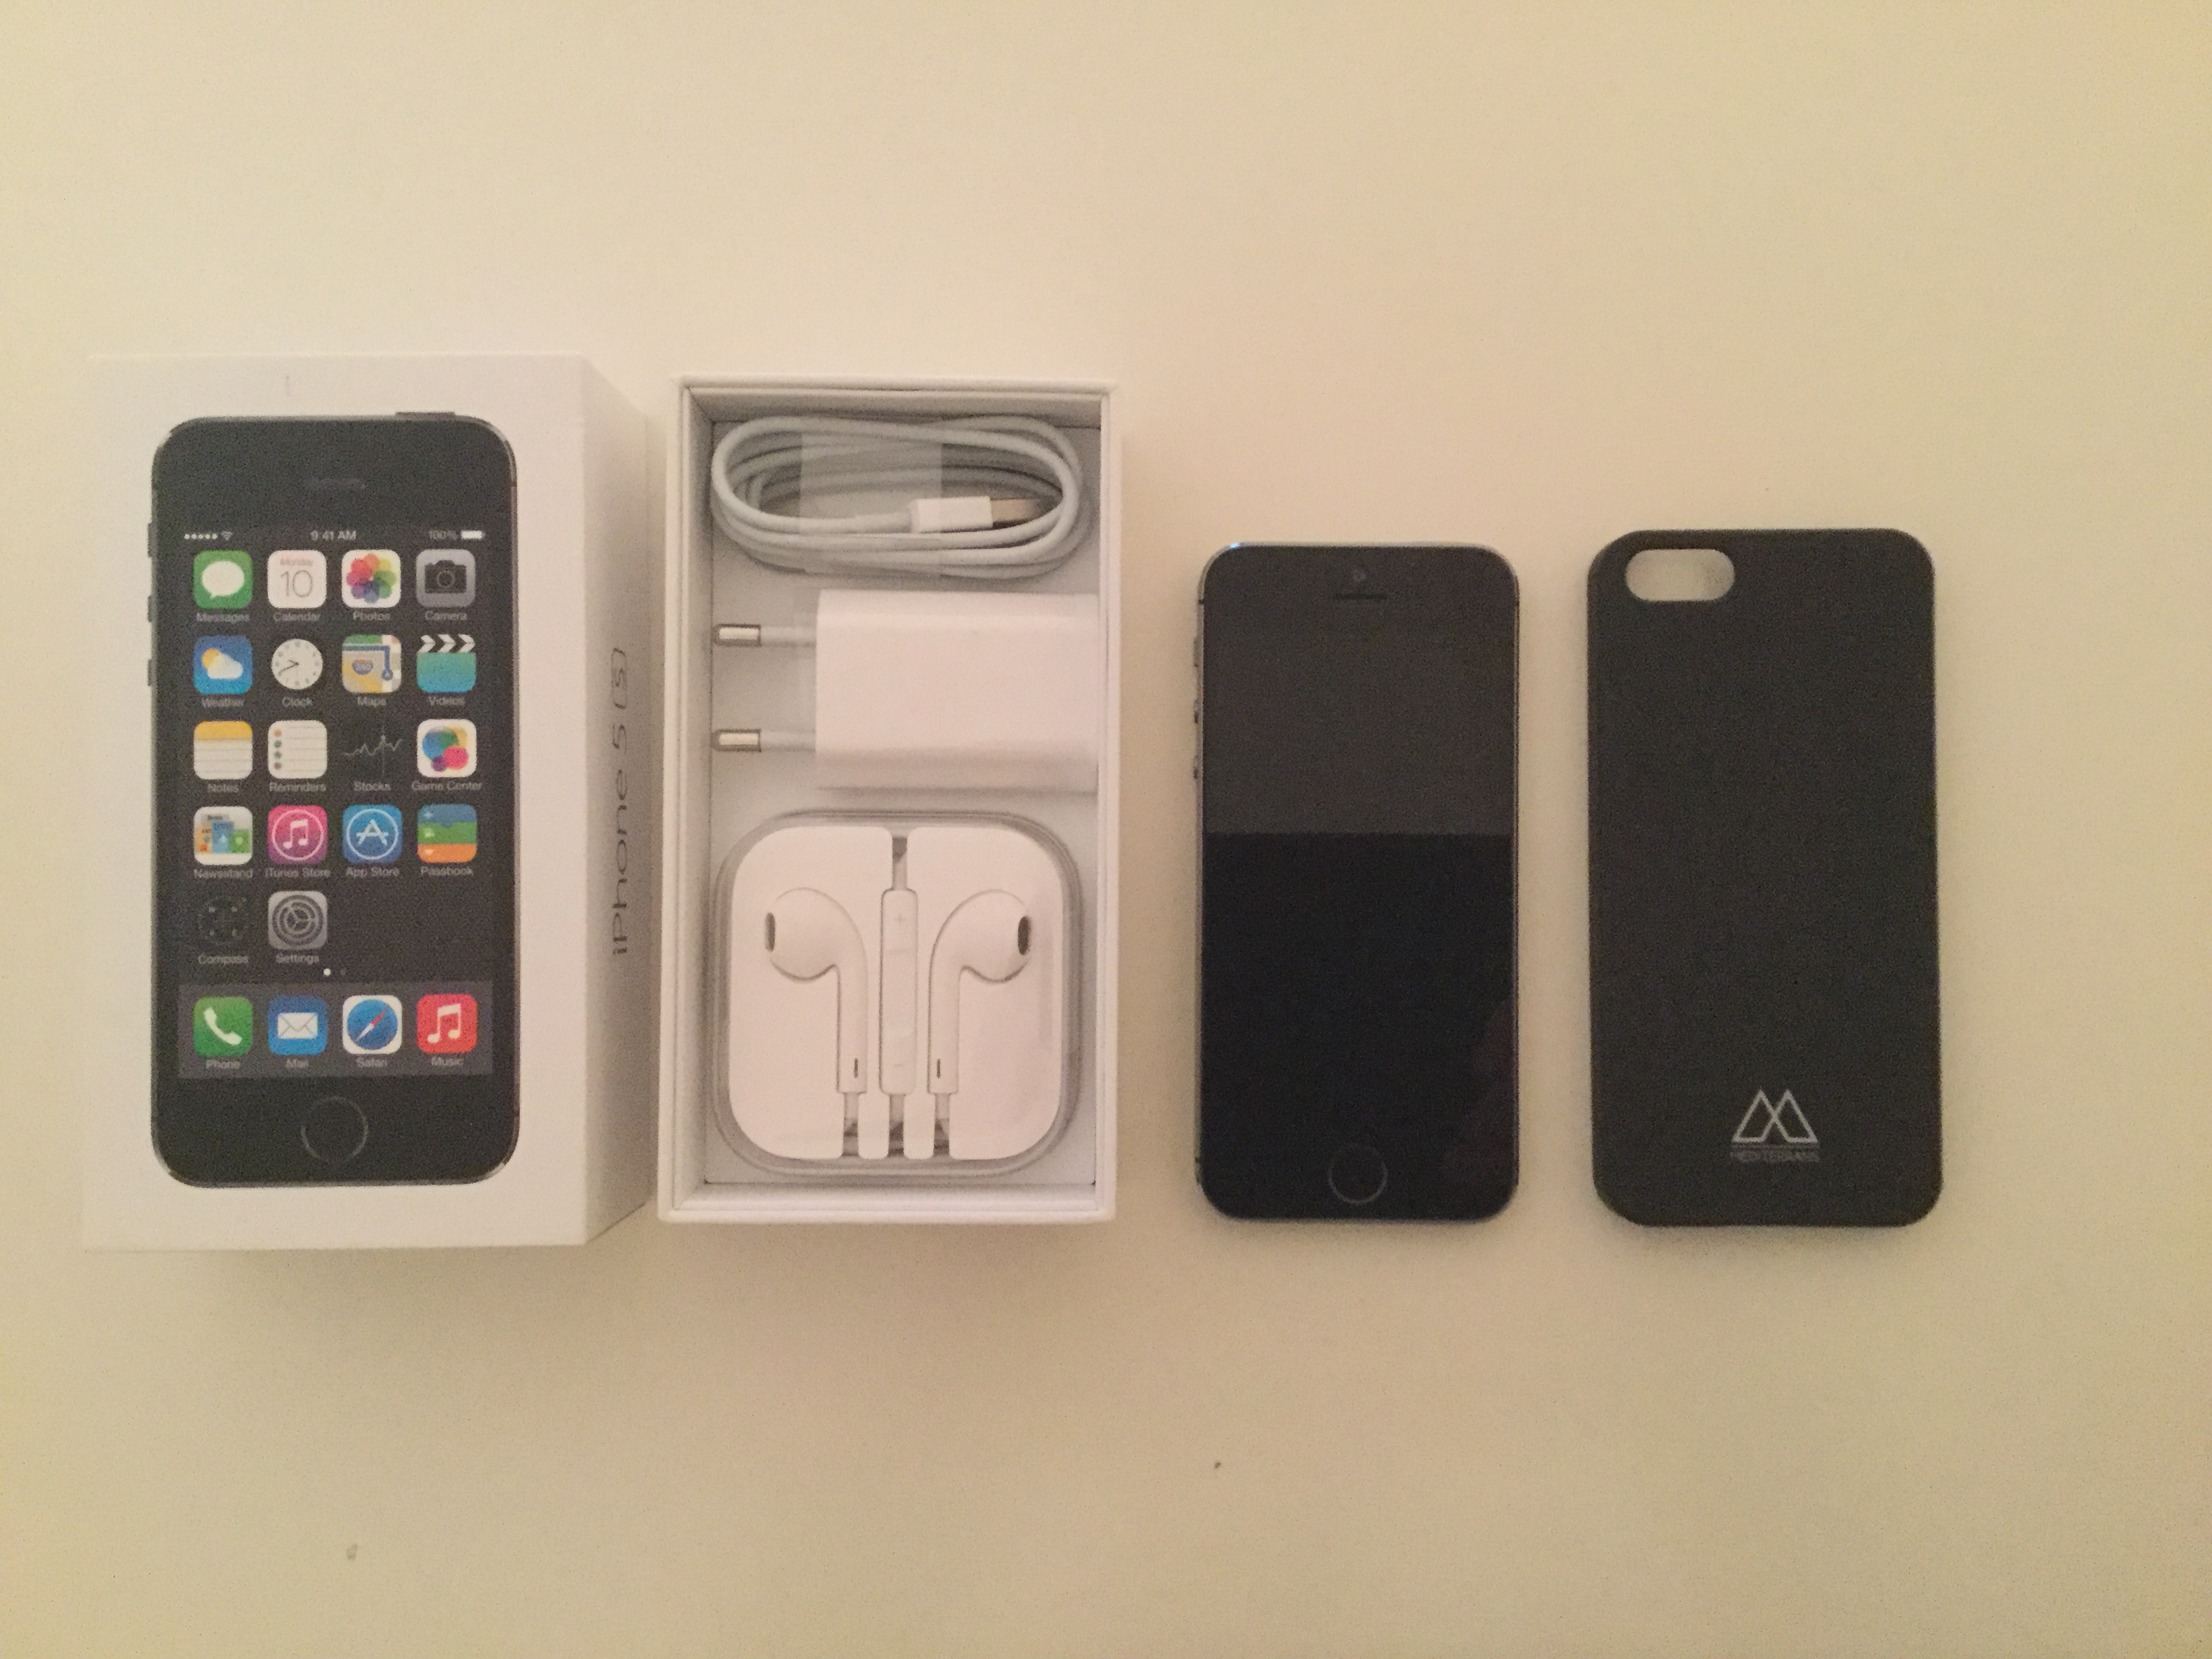 Iphone 5 S Libre Venta Iphone 5s Libre Complementos Venta Segunda Mano Apple